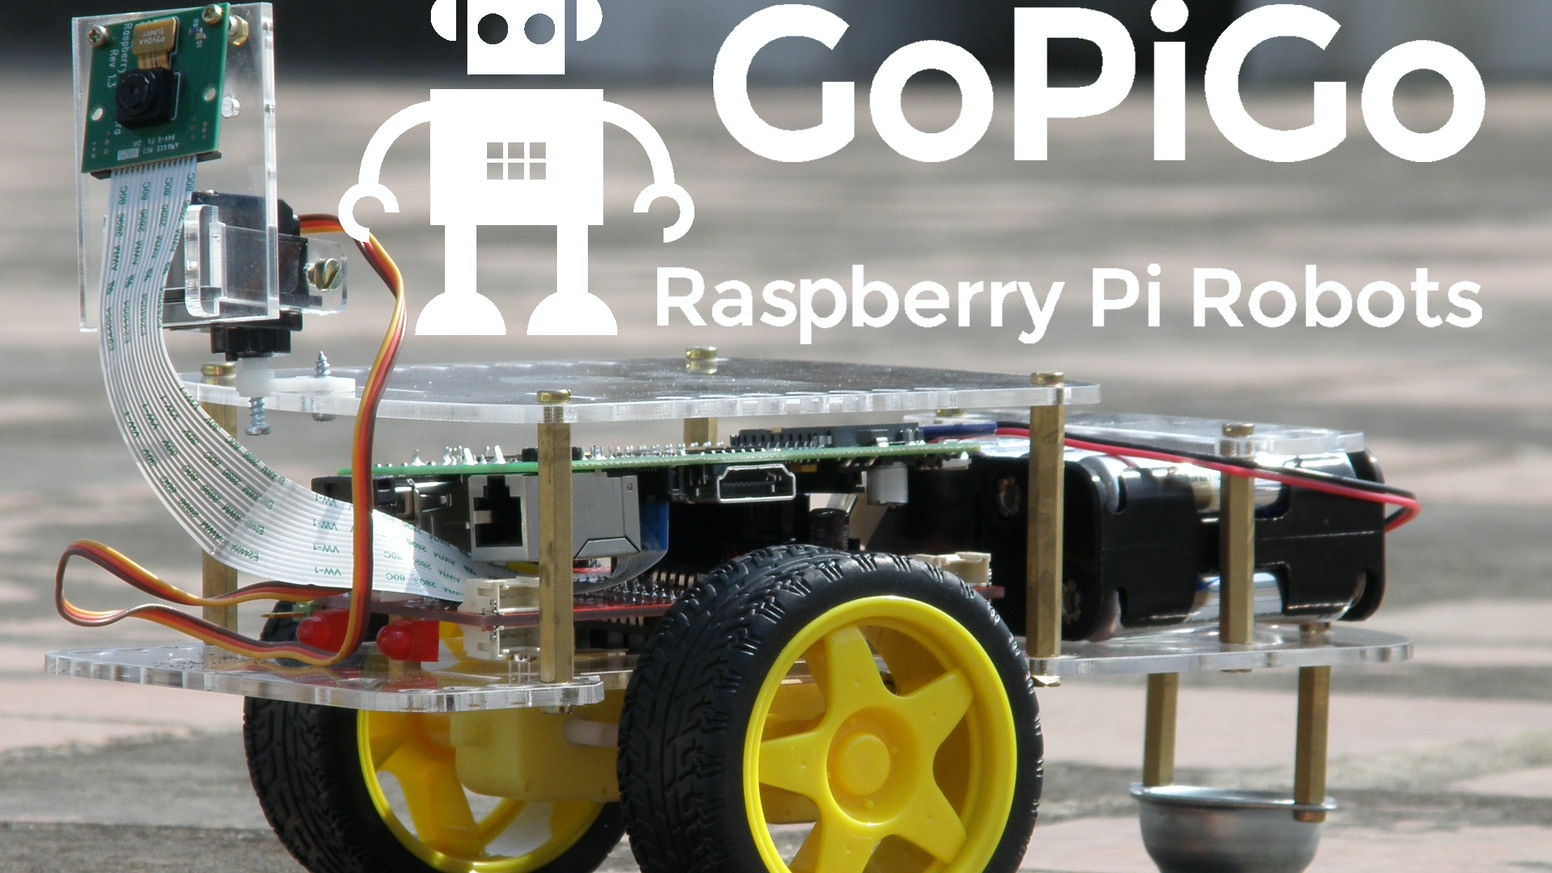 The GoPiGo is a delightful and complete robot for the Raspberry Pi that turns your Pi into a fully operating robot.